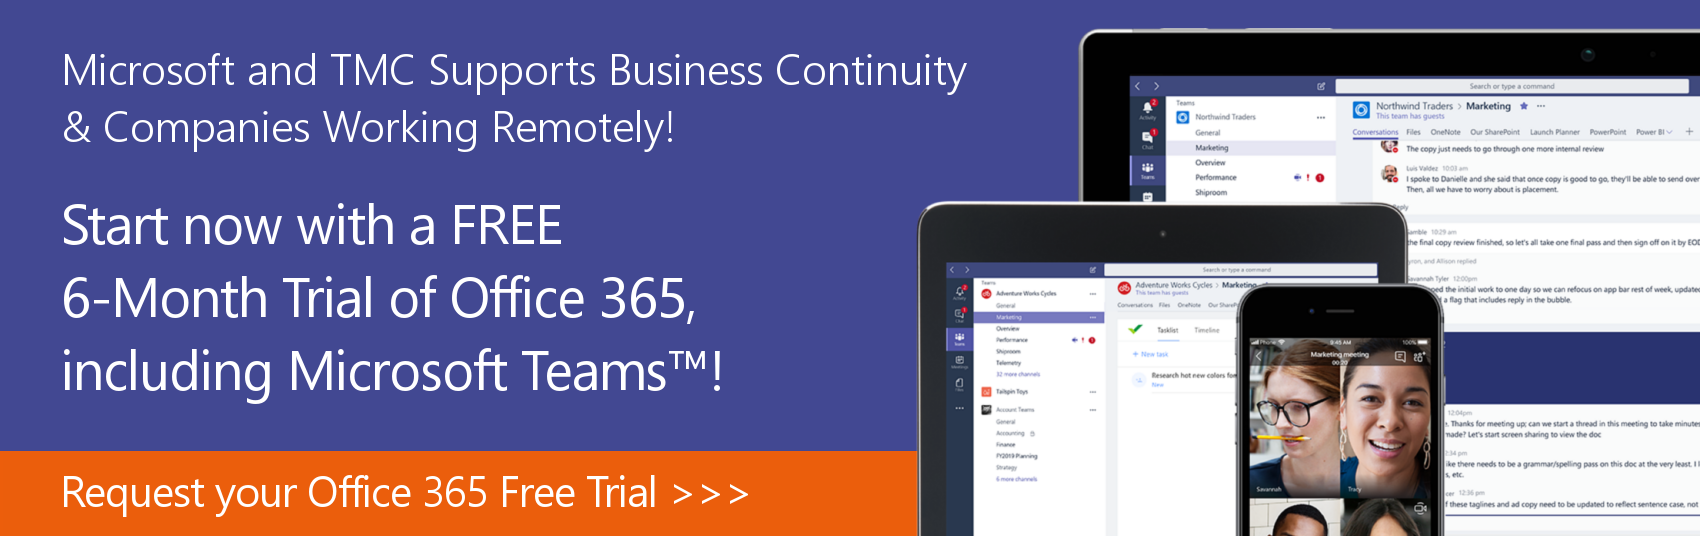 Microsoft Teams Free 6-month Trial - Technology Management Concepts